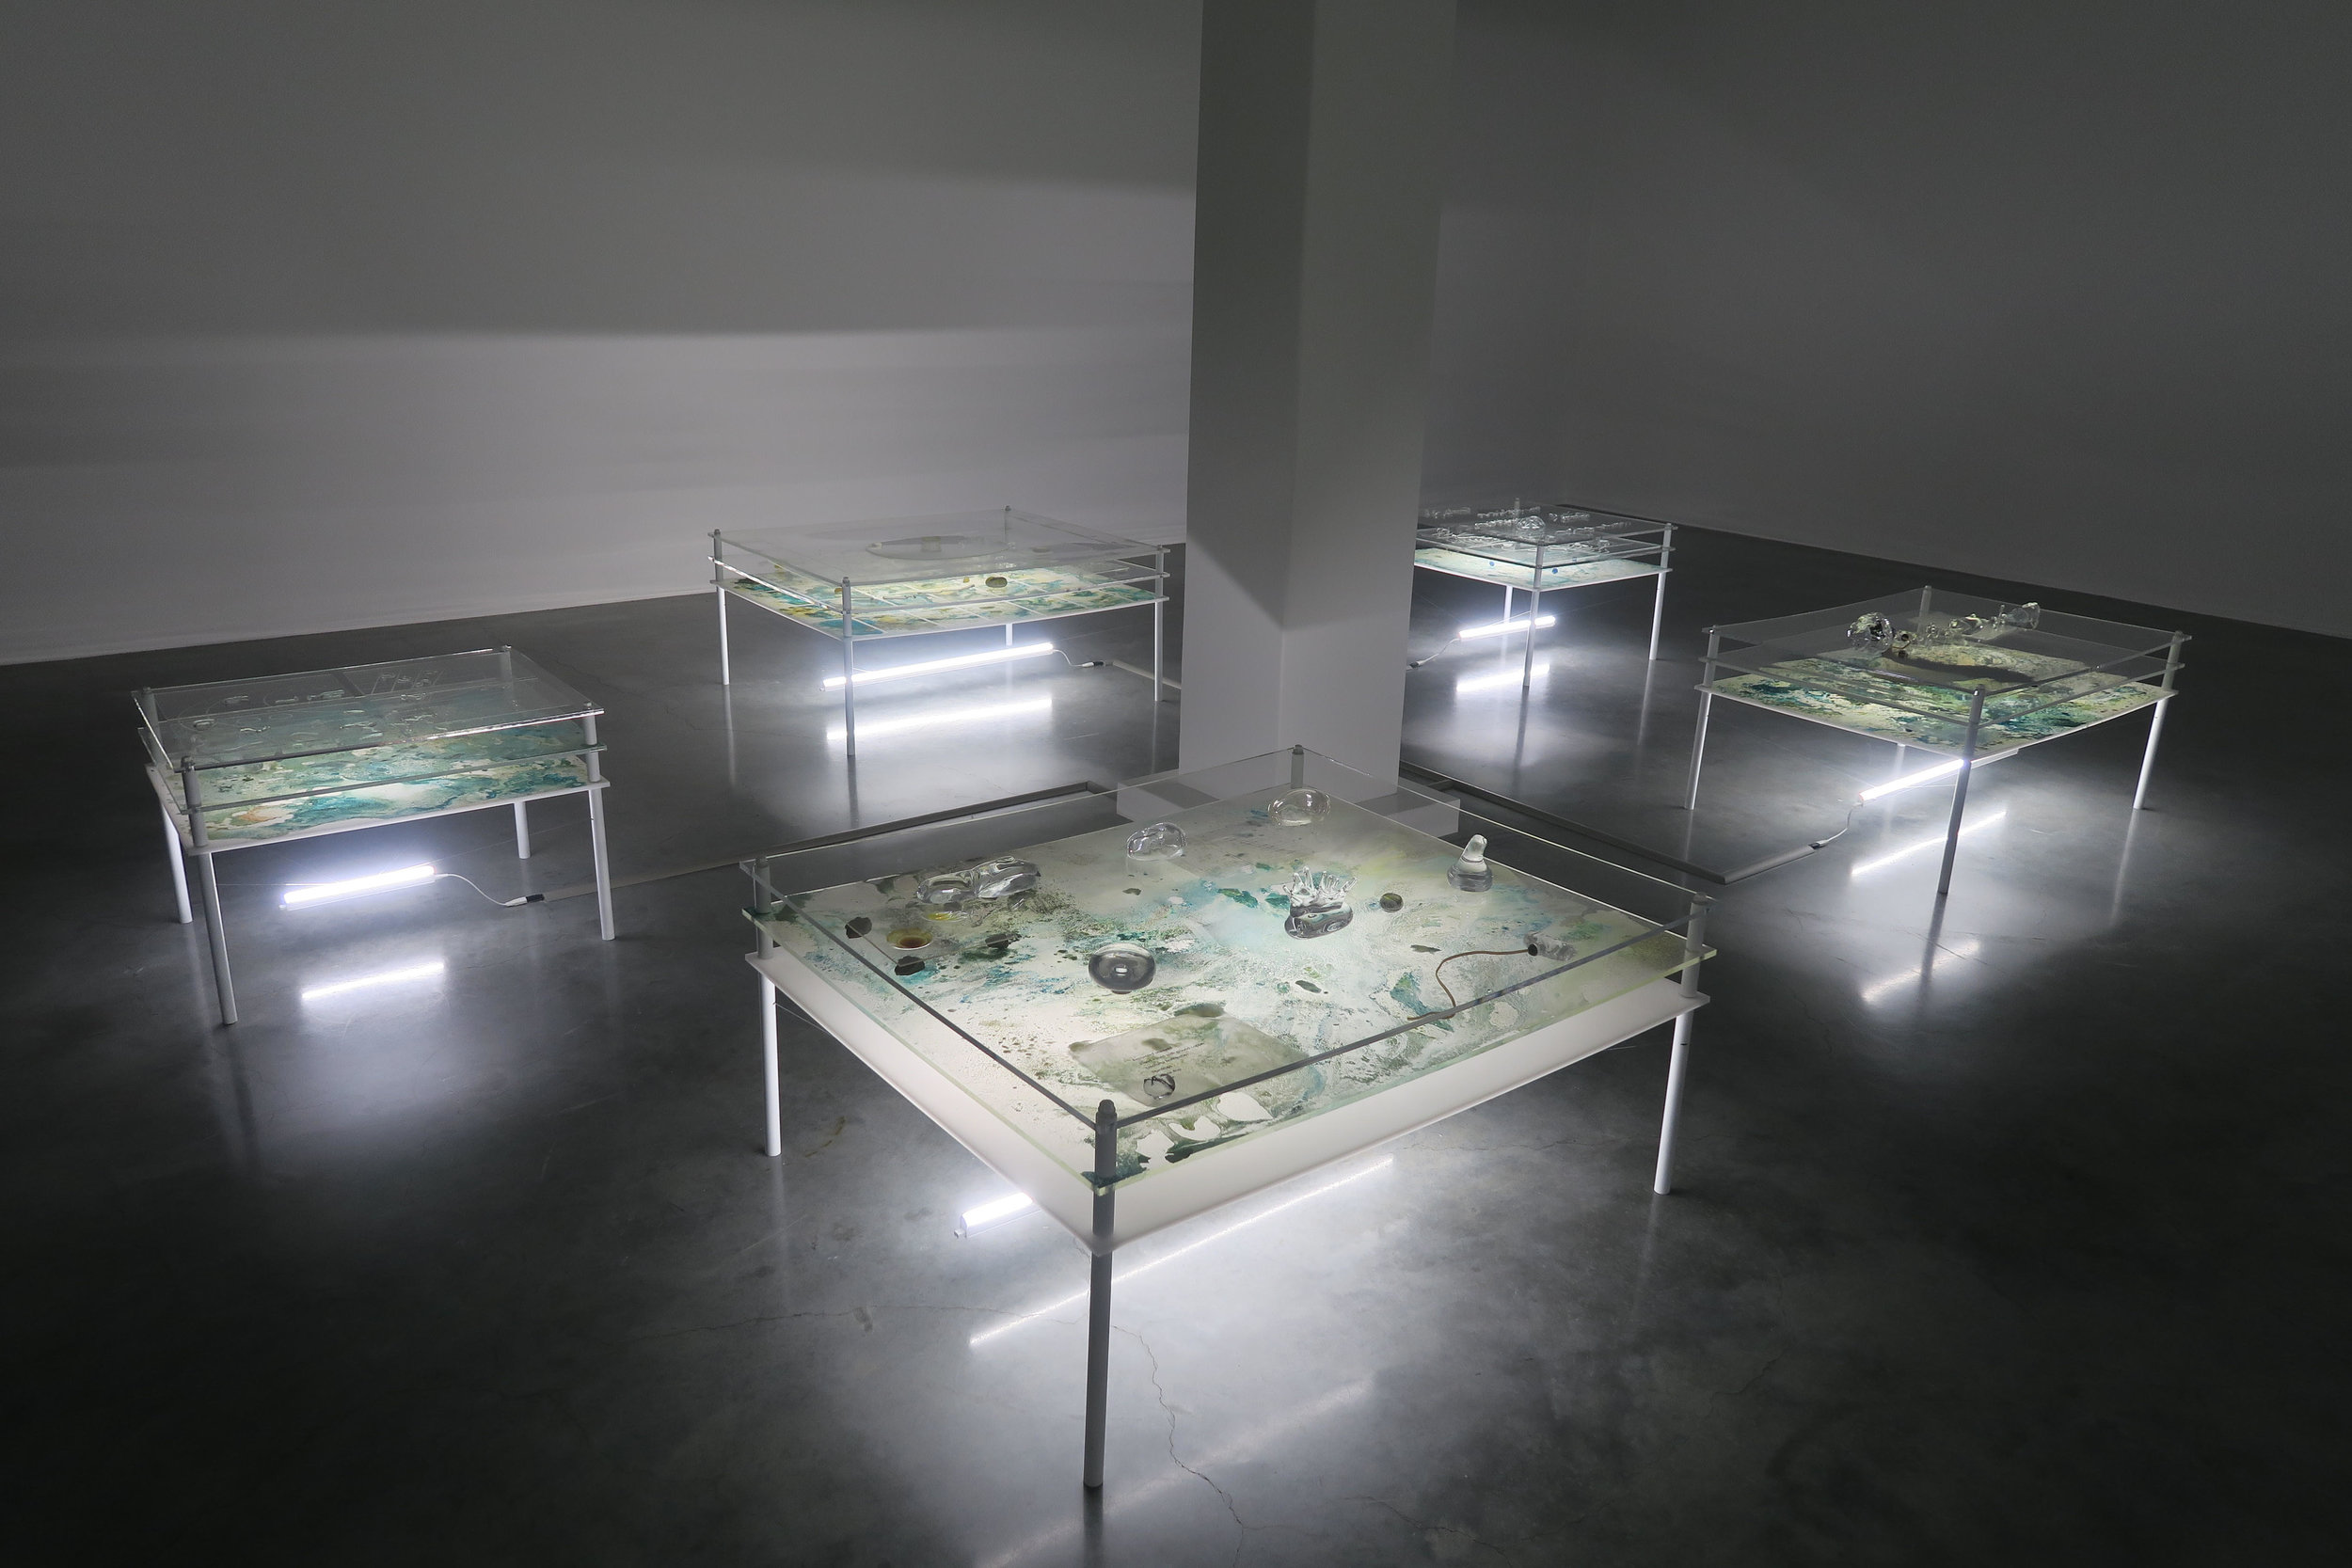 Tuomas Aleksander Laitinen, Dossier of Osmosis , mixed media installation with ultrasonic speakers, exhibition view at the 21st Biennale of Sydney, 2018. Courtesy the artist and Helsinki Contemporary,